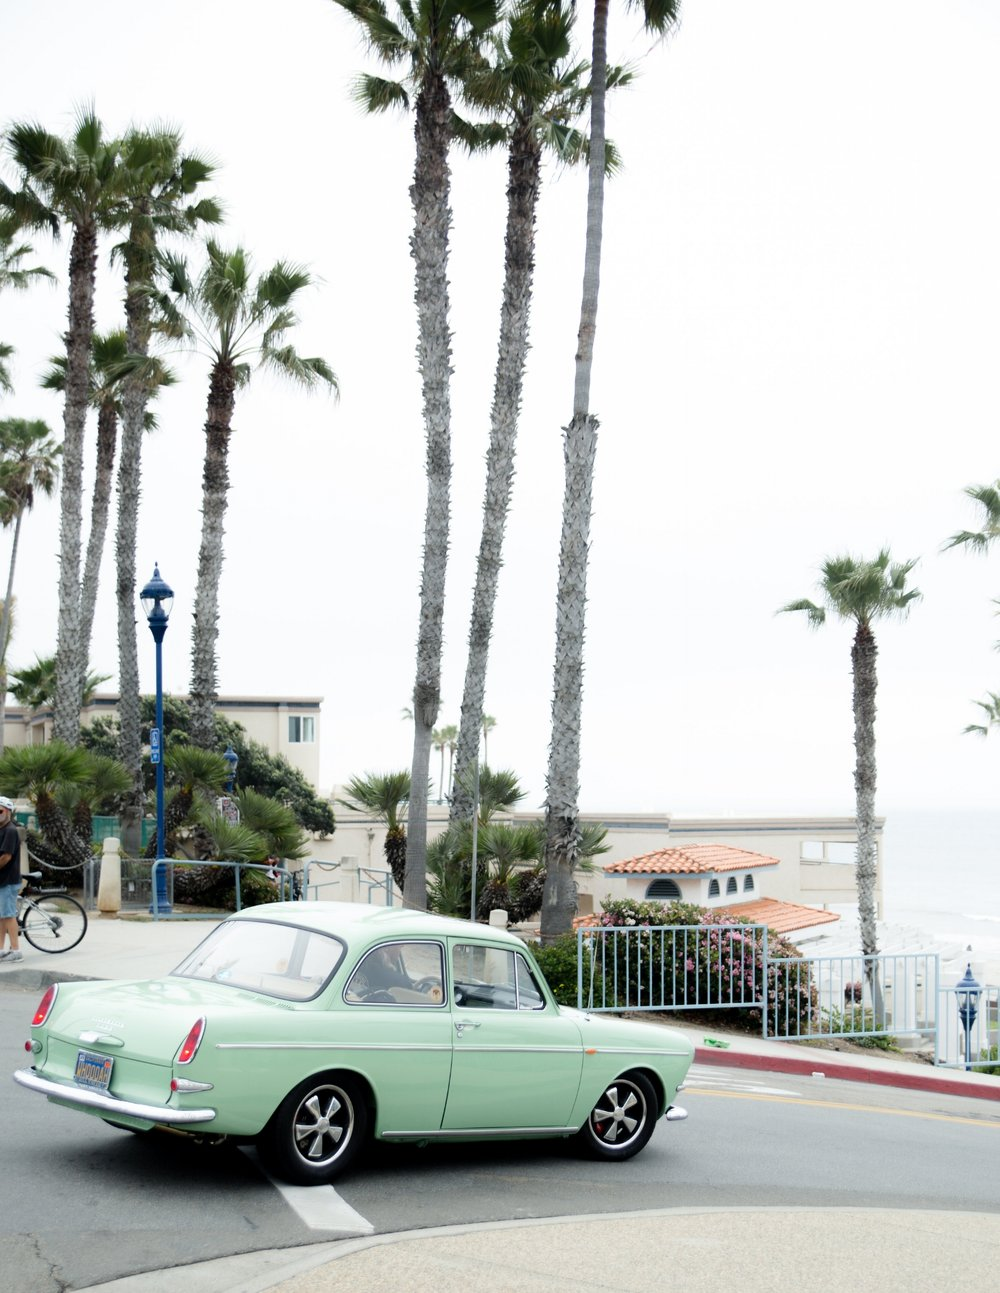 Old car cruising the beach in Oceanside California on a foggy weekend morning